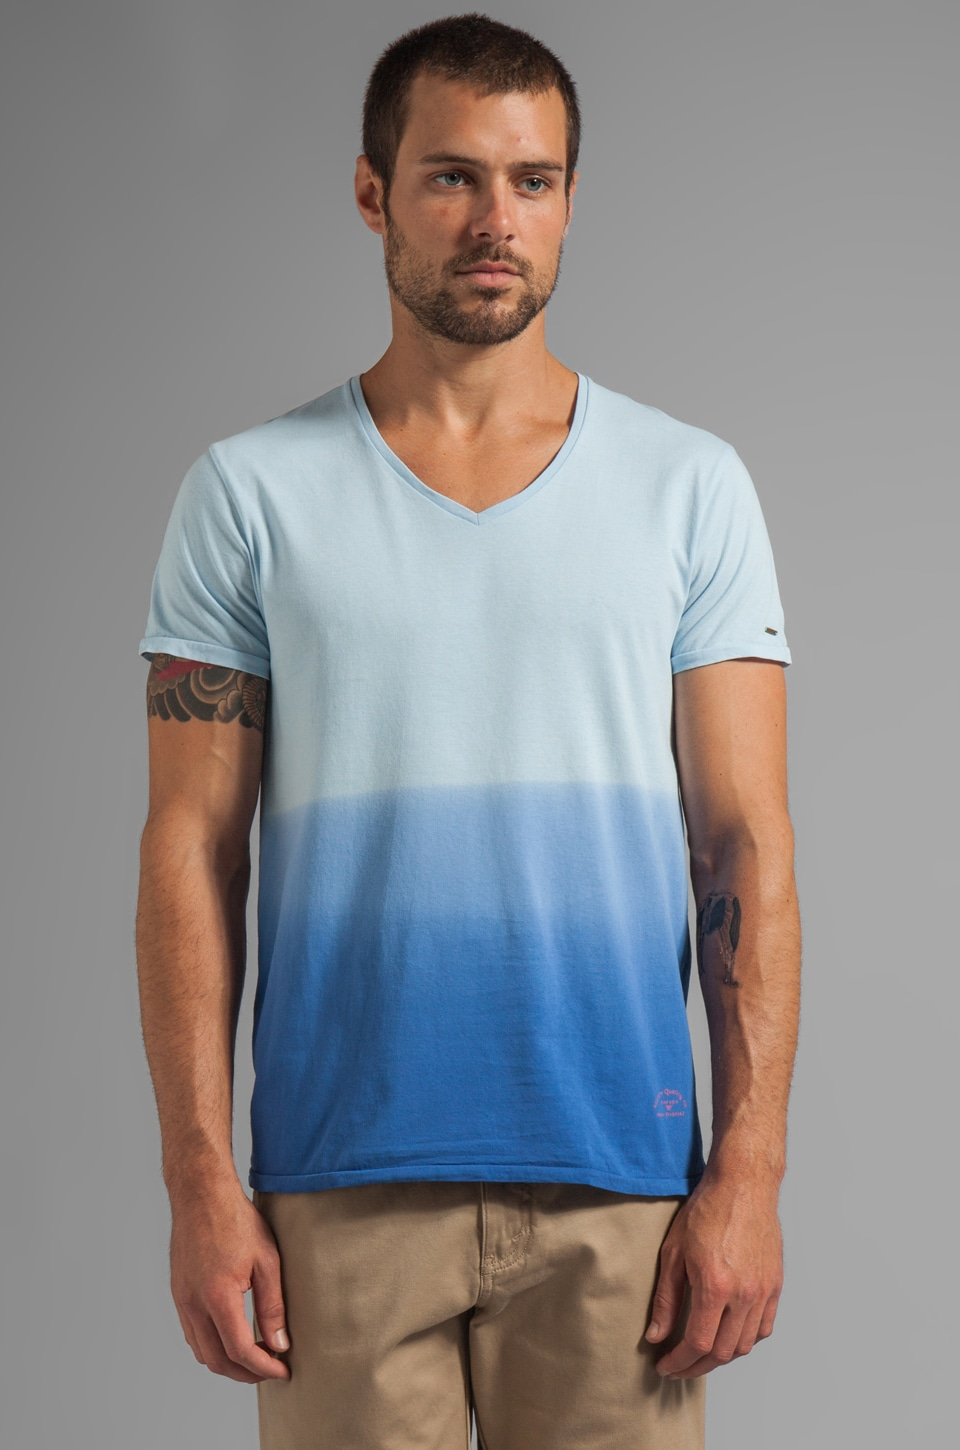 Scotch & Soda Ombre V-Neck Tee in Blue